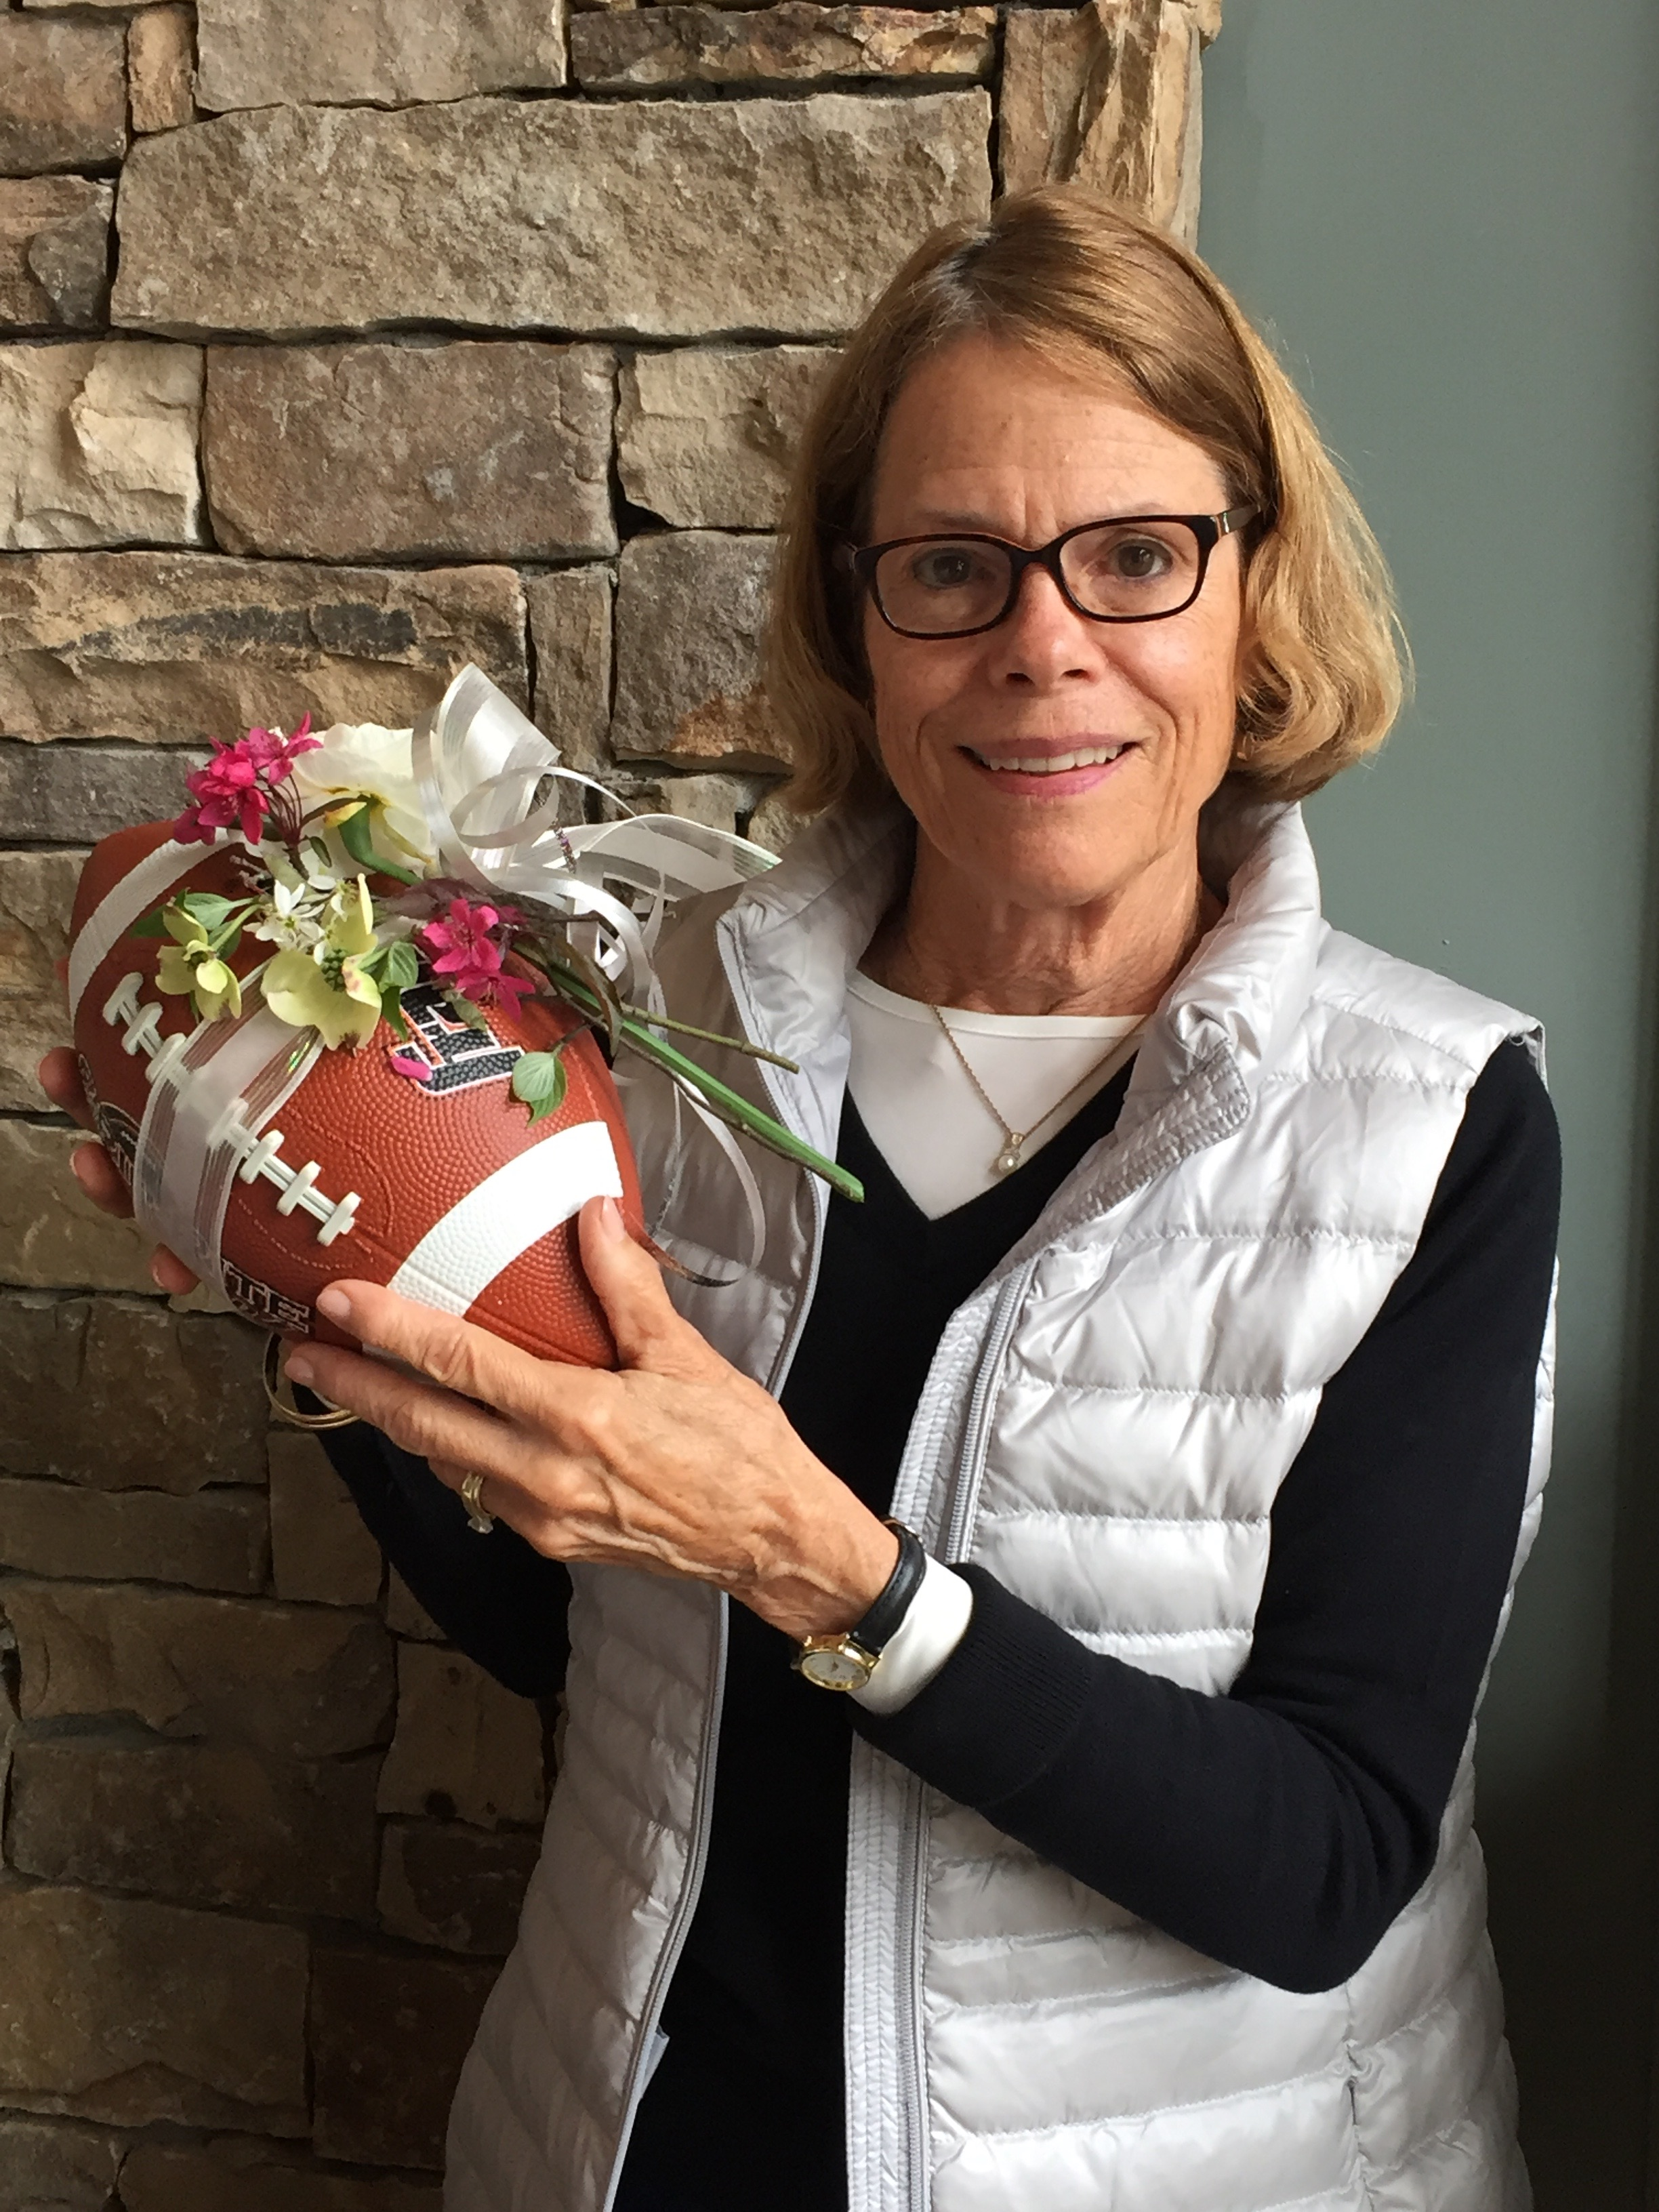 Judy Kaufman, gala chair, had teased the club with the promise of football meets flowers by way of a corsage-wearing football.